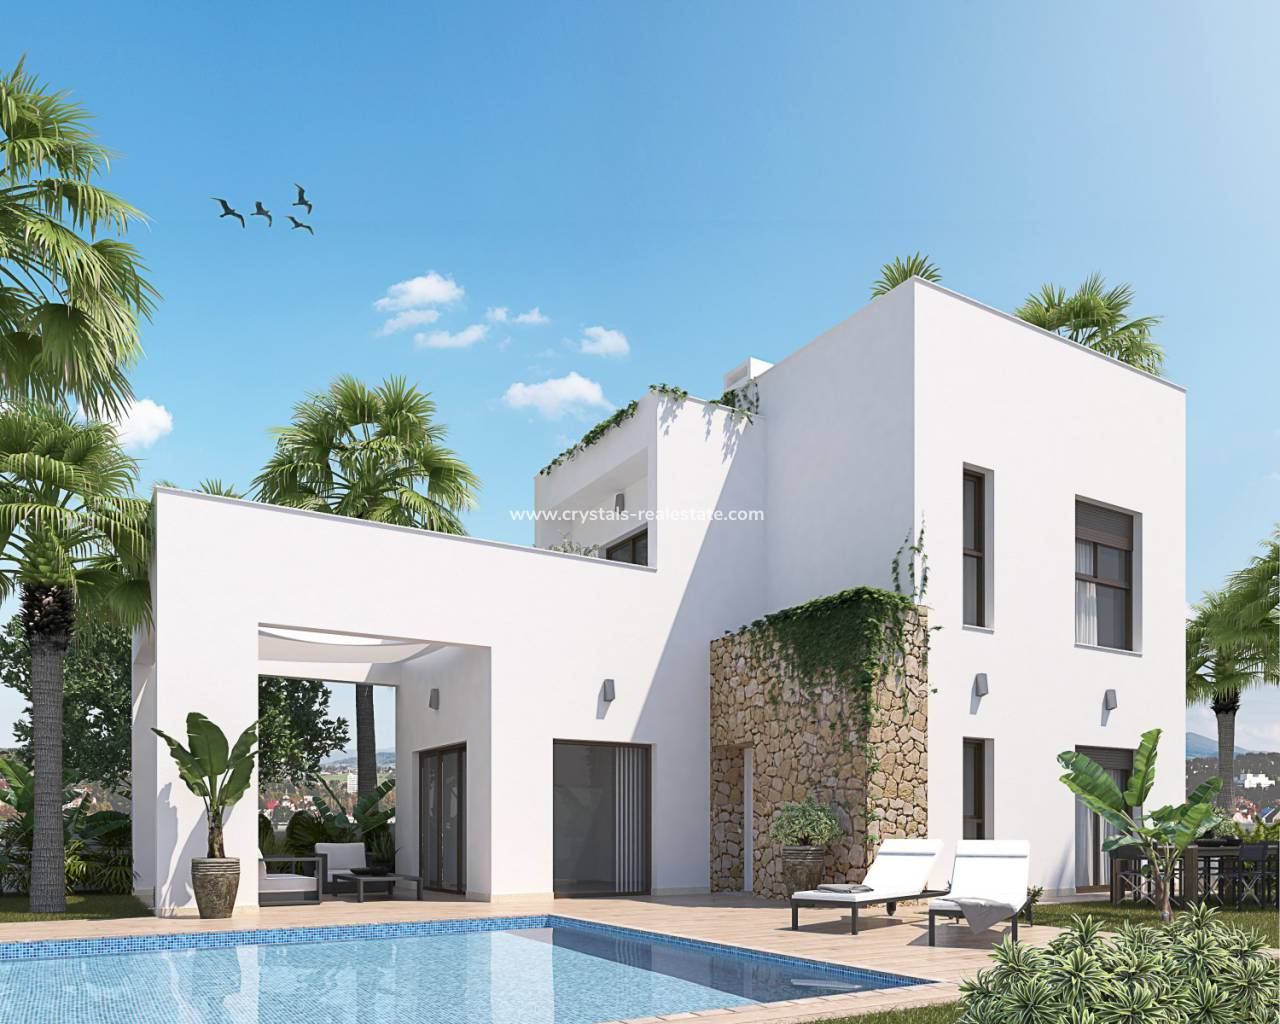 Detached Villa - New Build - Torrevieja - Nueva Torrevieja - Aguas Nuevas